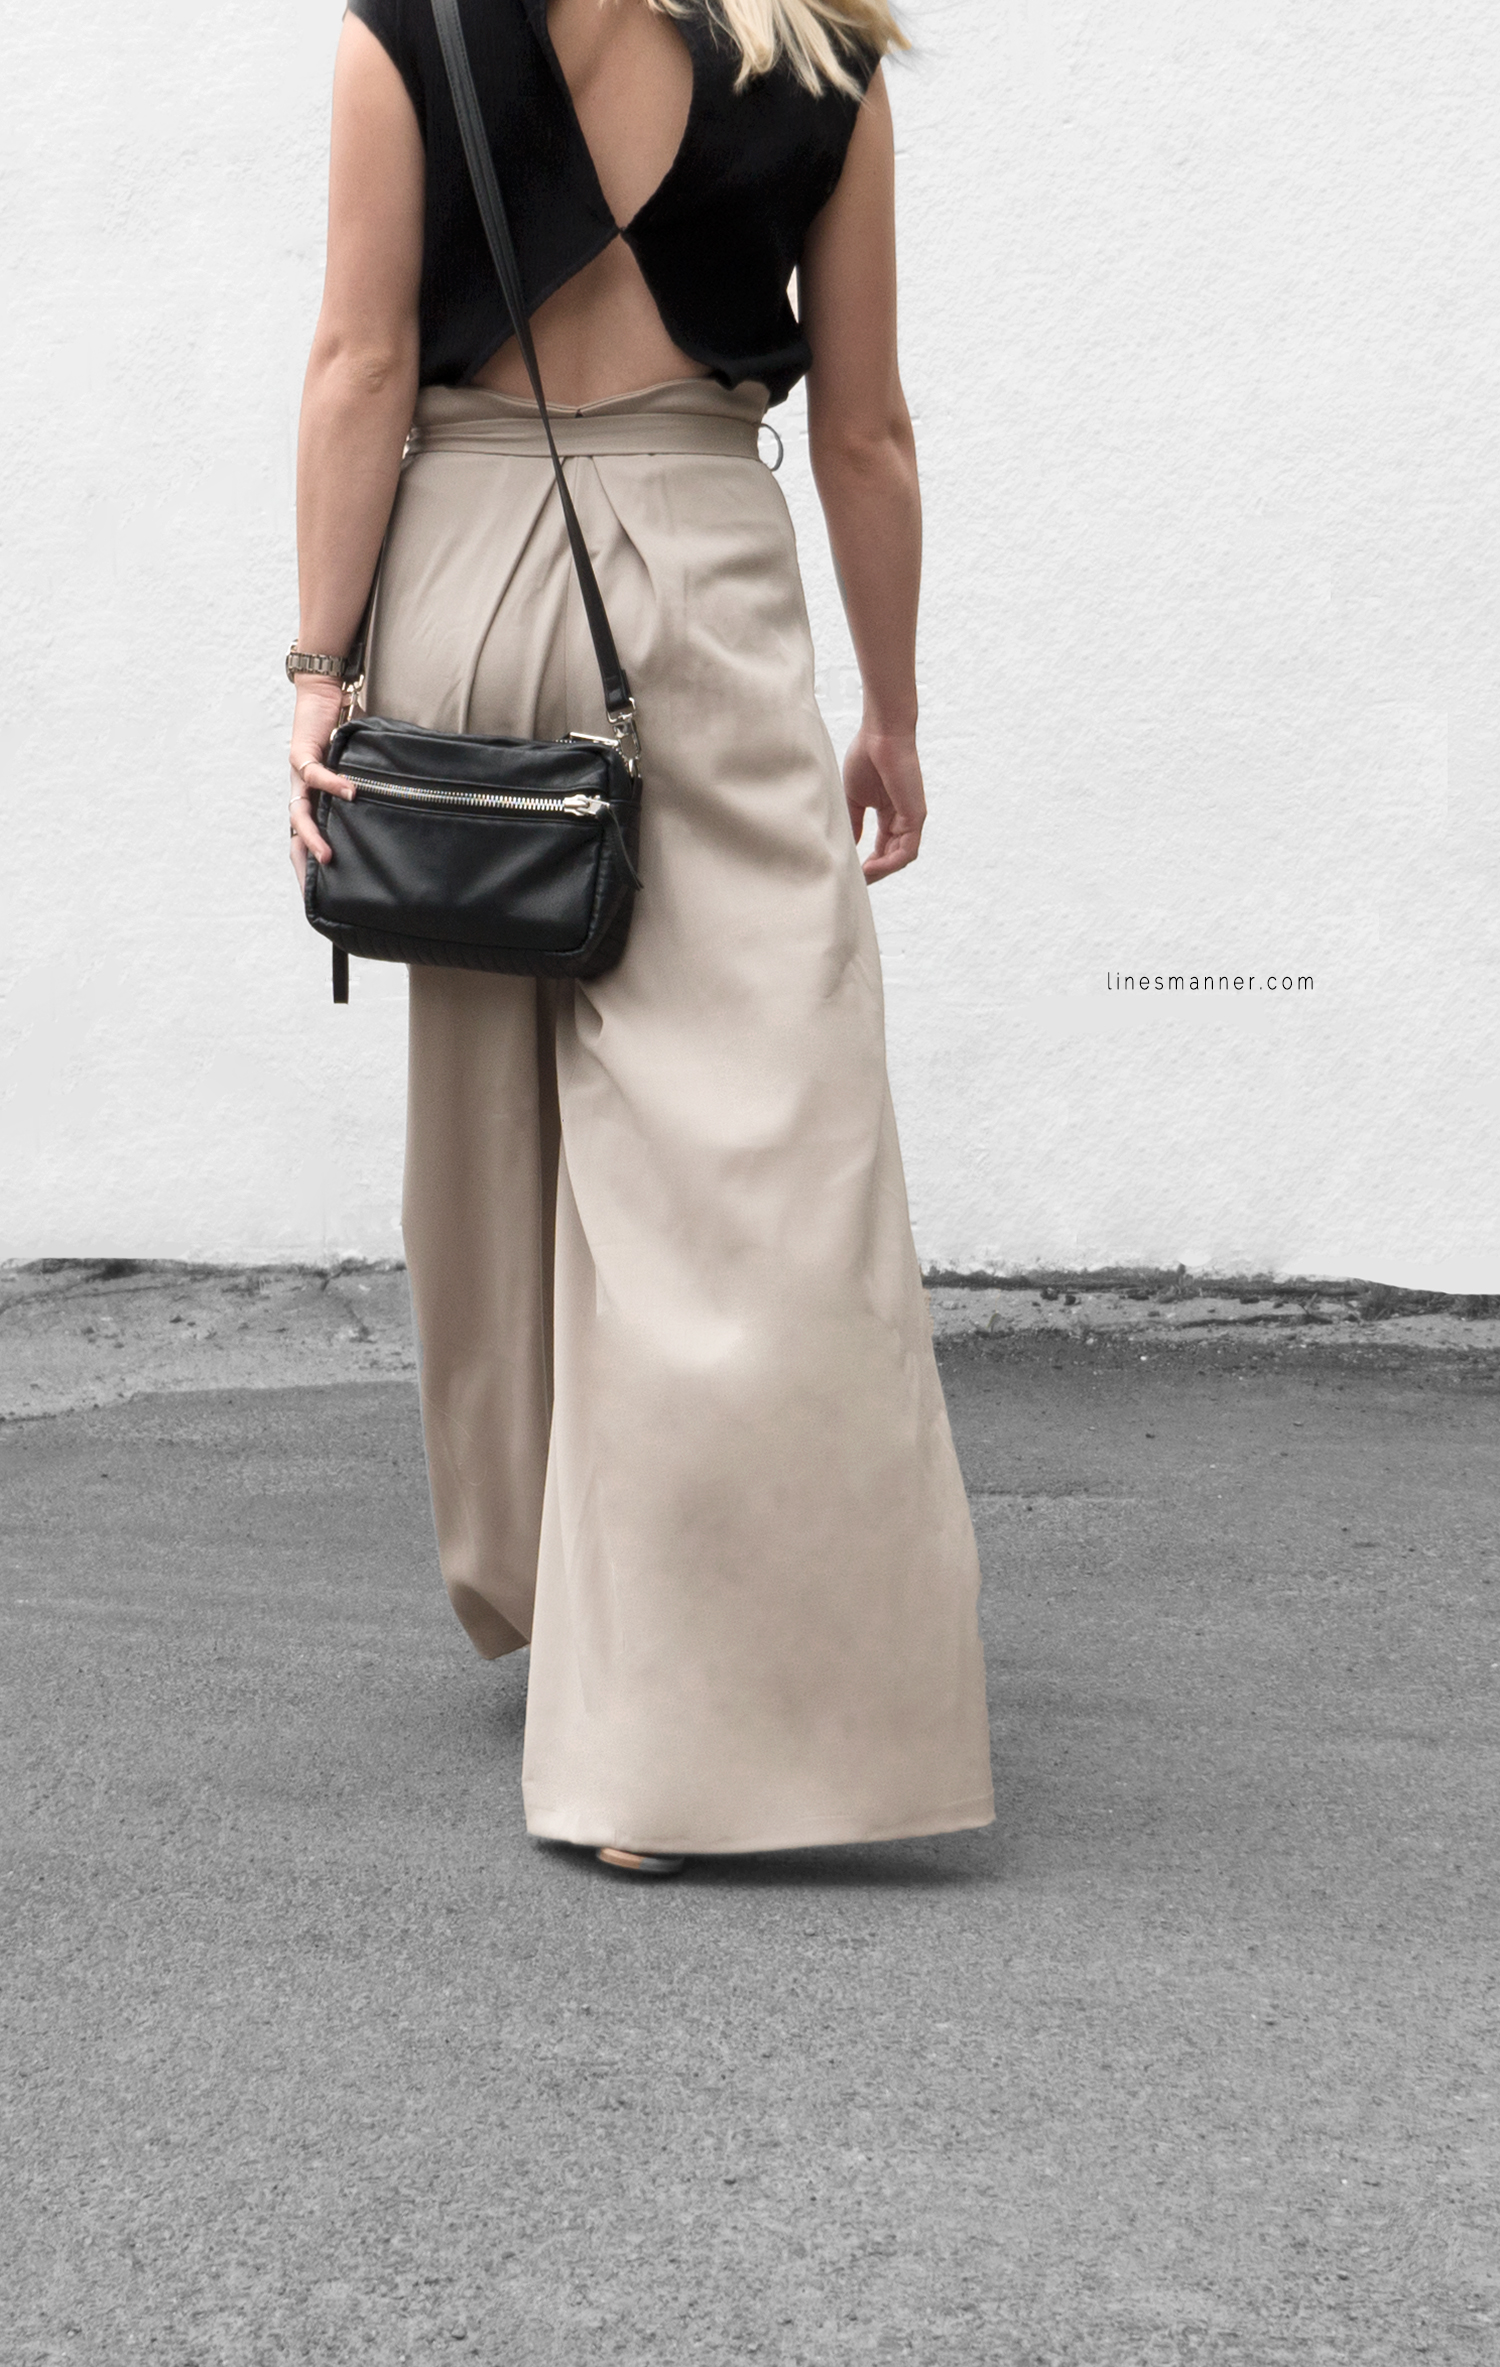 Lines-Manner-Neutrals-Quality-Lora_Gene-Wide_Leg_Pant-Modern-Sophistication-Tailored-Essentials-Details-Simplicity-Summer_vibes-Volume-Proportion-Flowy-9